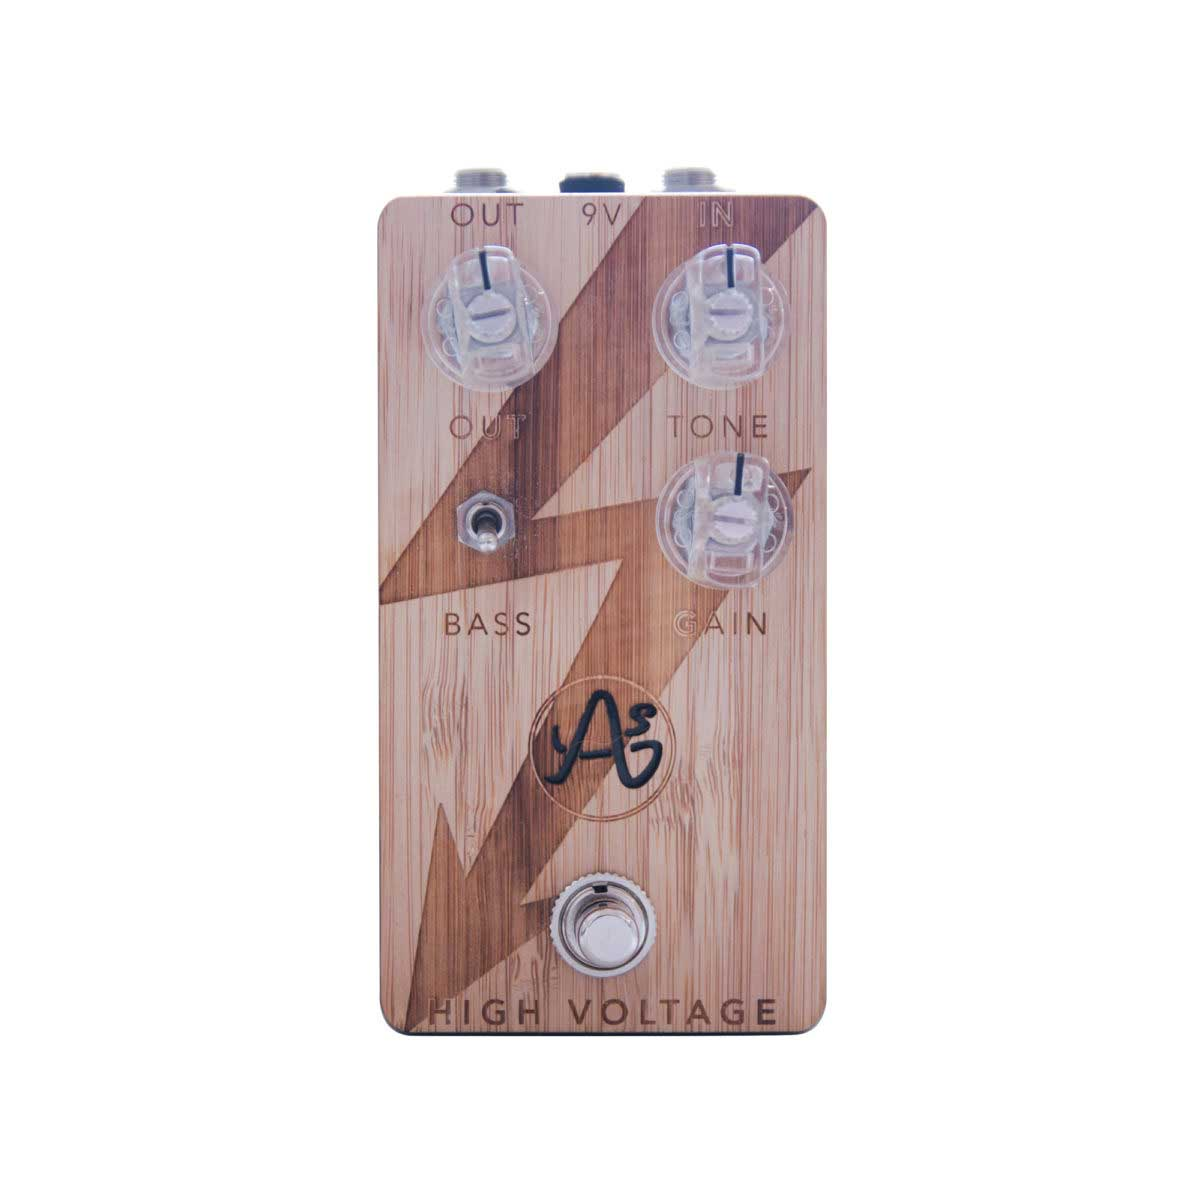 Anasounds High Voltage Plexi Distortion Pedal